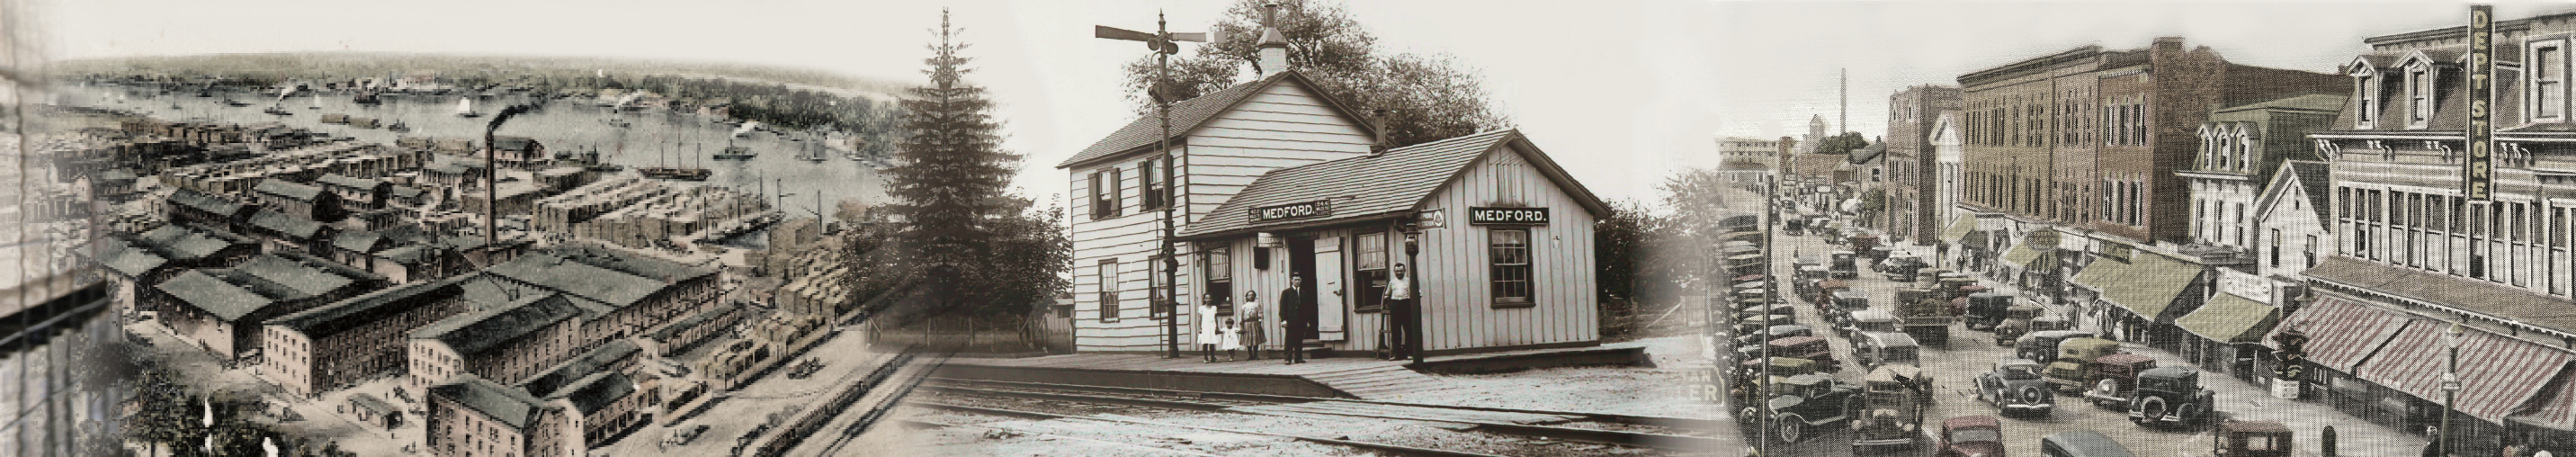 Patchogue-Medford Area History Header